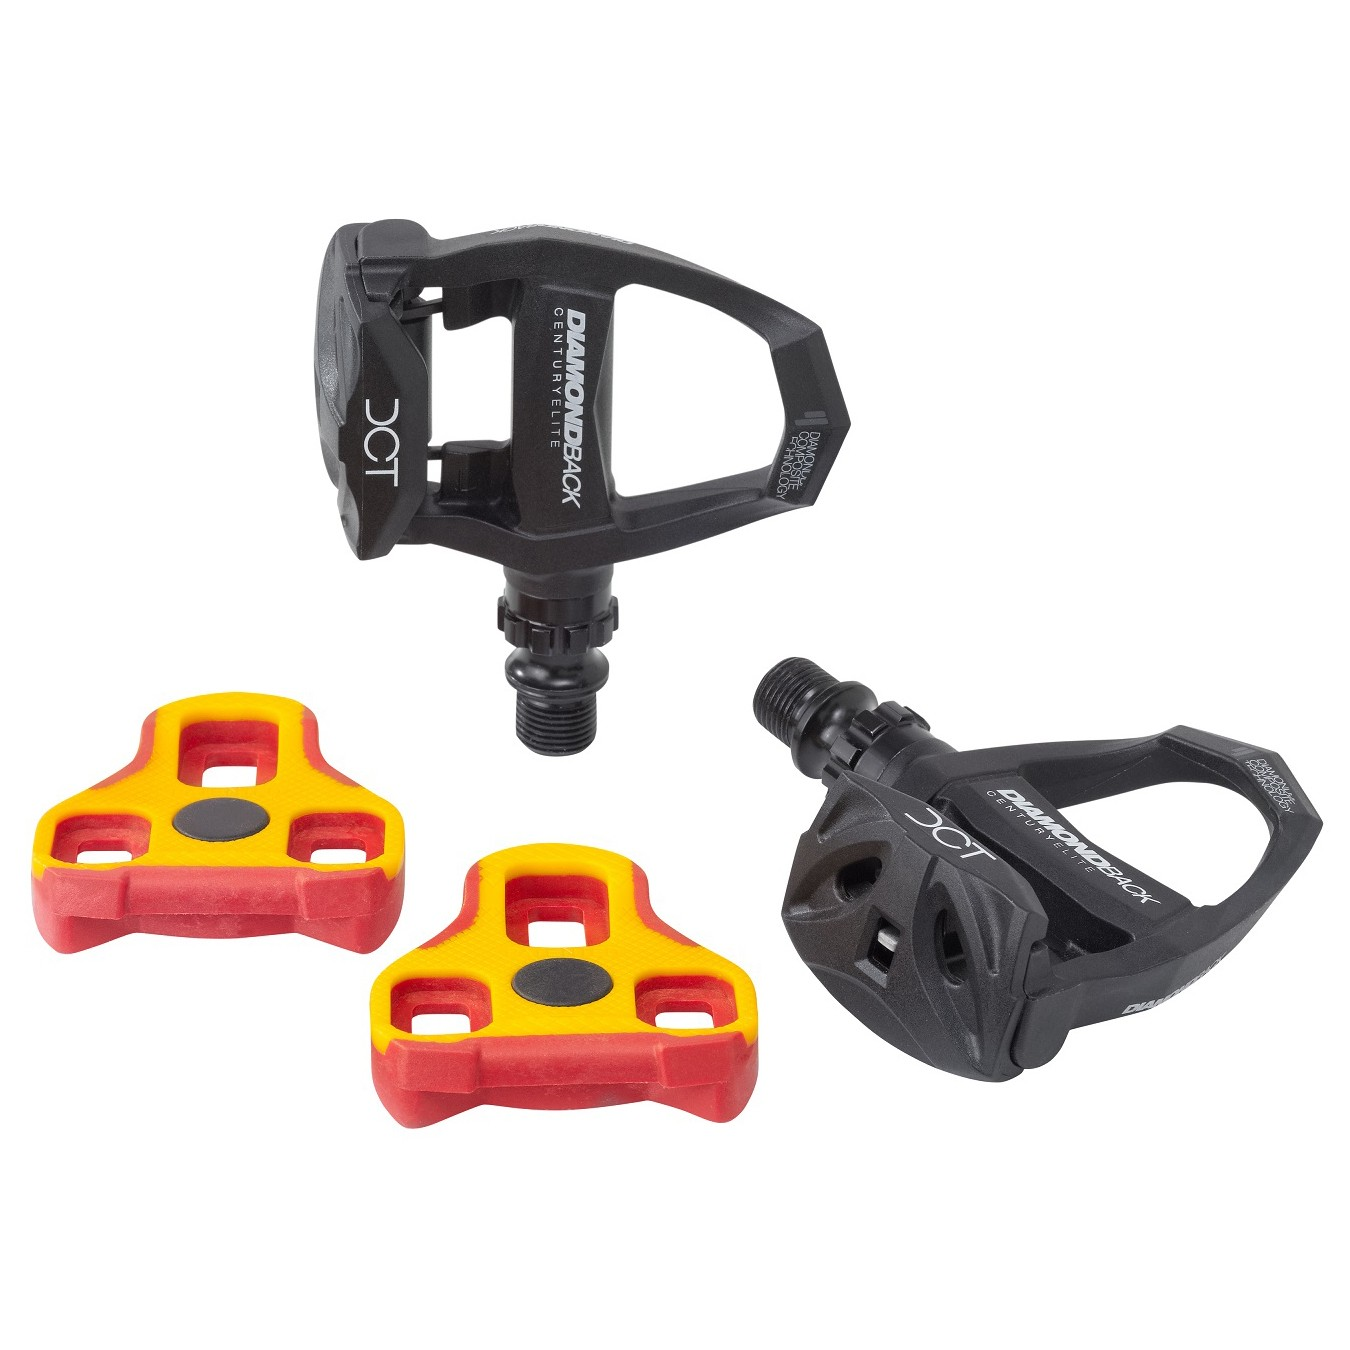 Black clipless pedals for road bike with red and yellow cleats